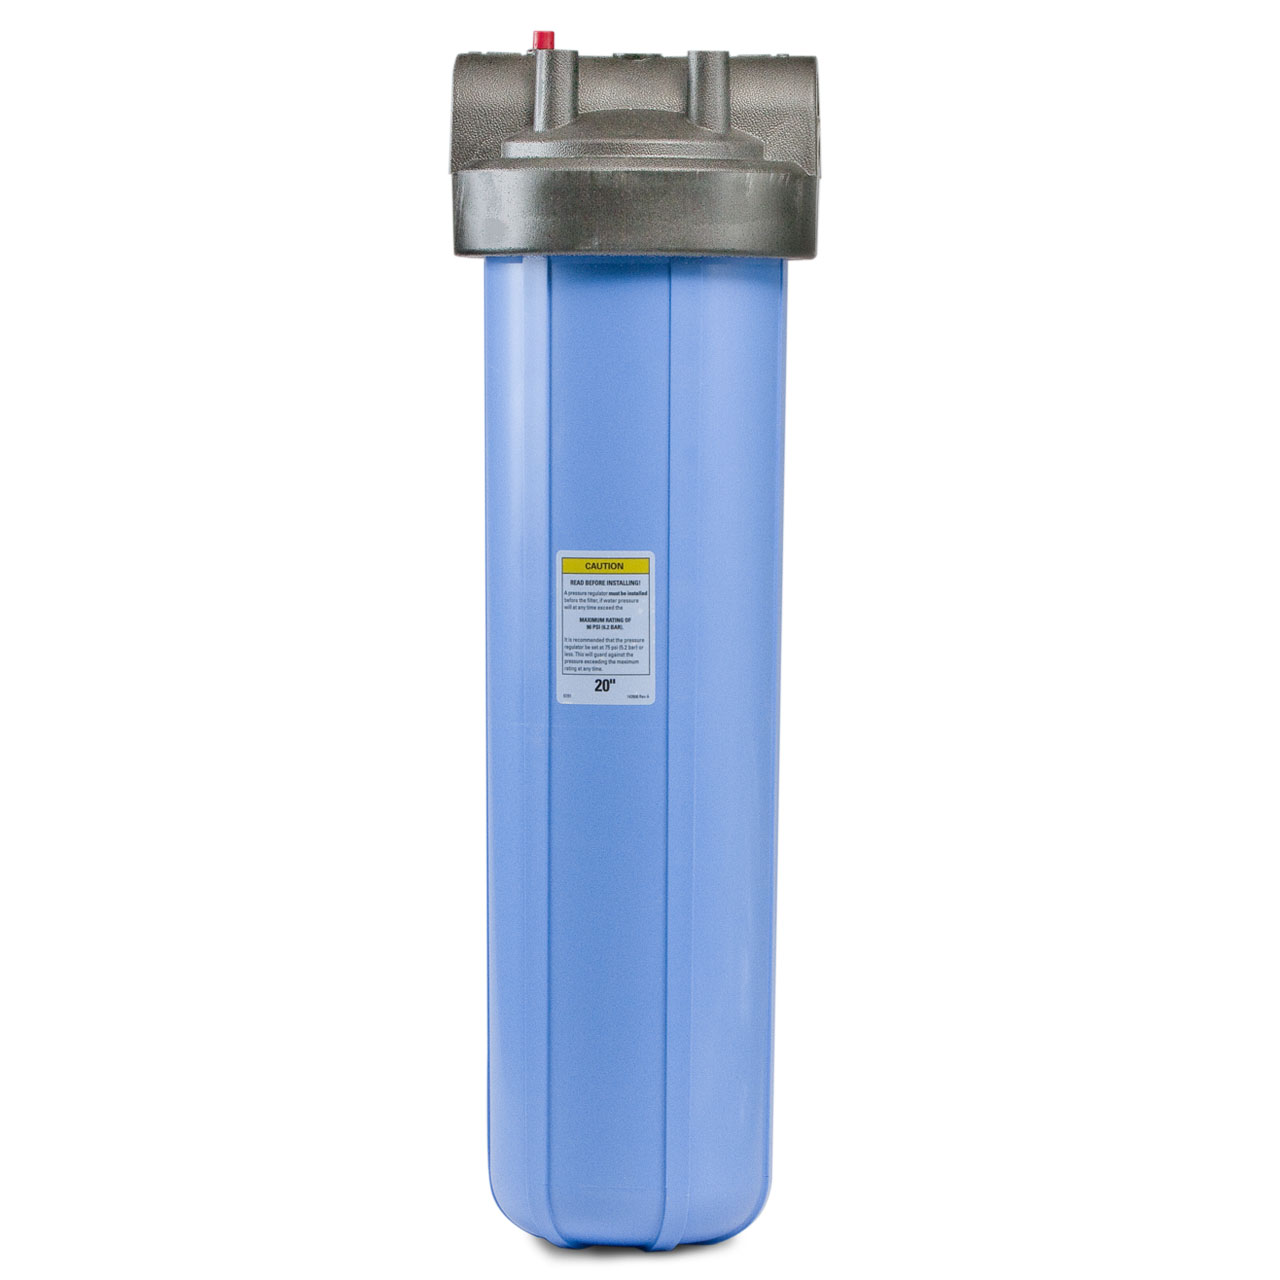 Amtrol WX-251 Well-X-Trol Well Water Tank 62 Gallons